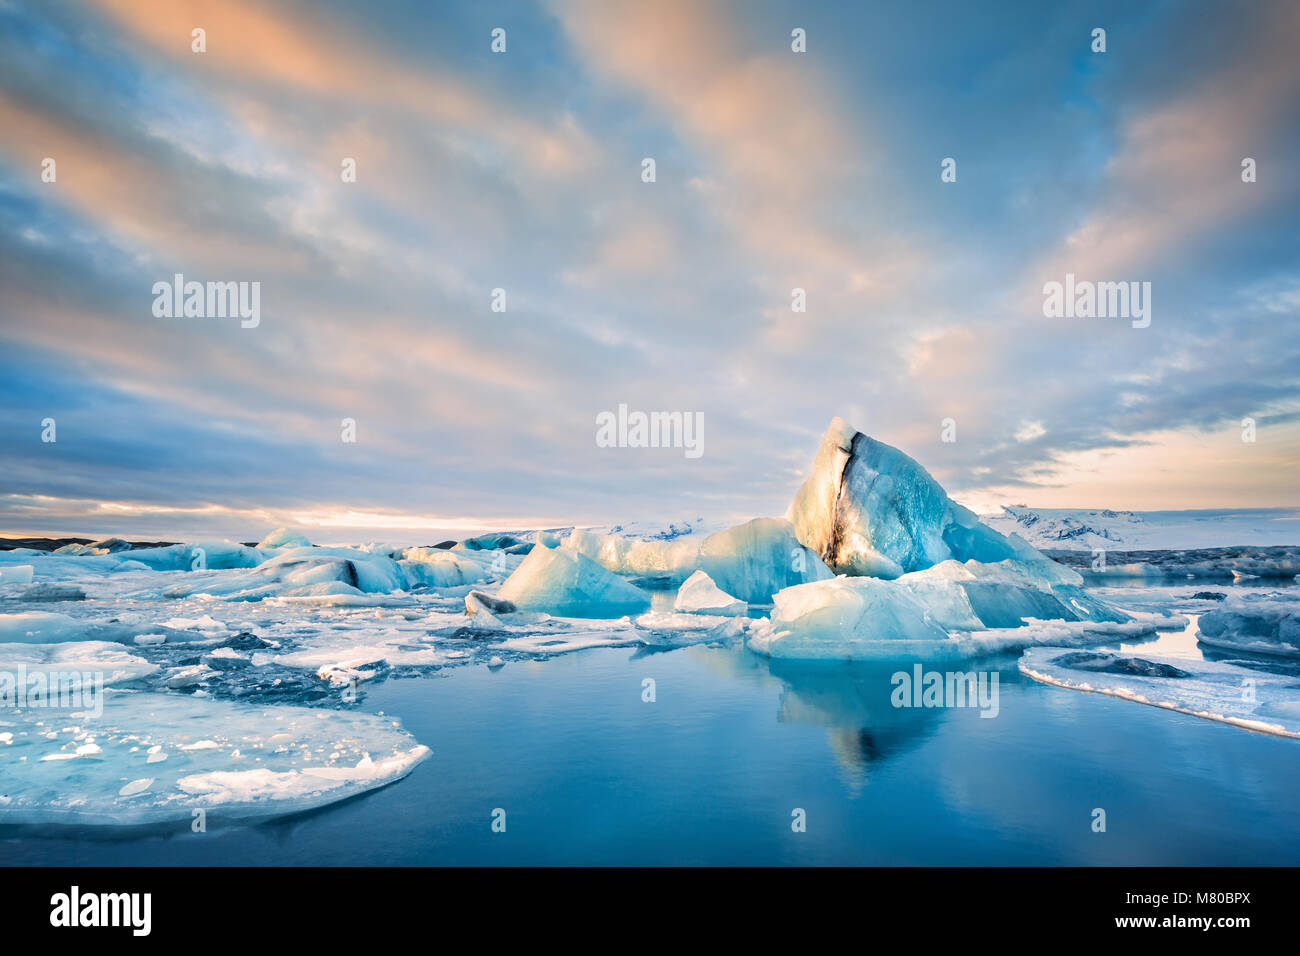 Icebergs float on Jokulsarlon glacier lagoon at sunrise, in Iceland. - Stock Image